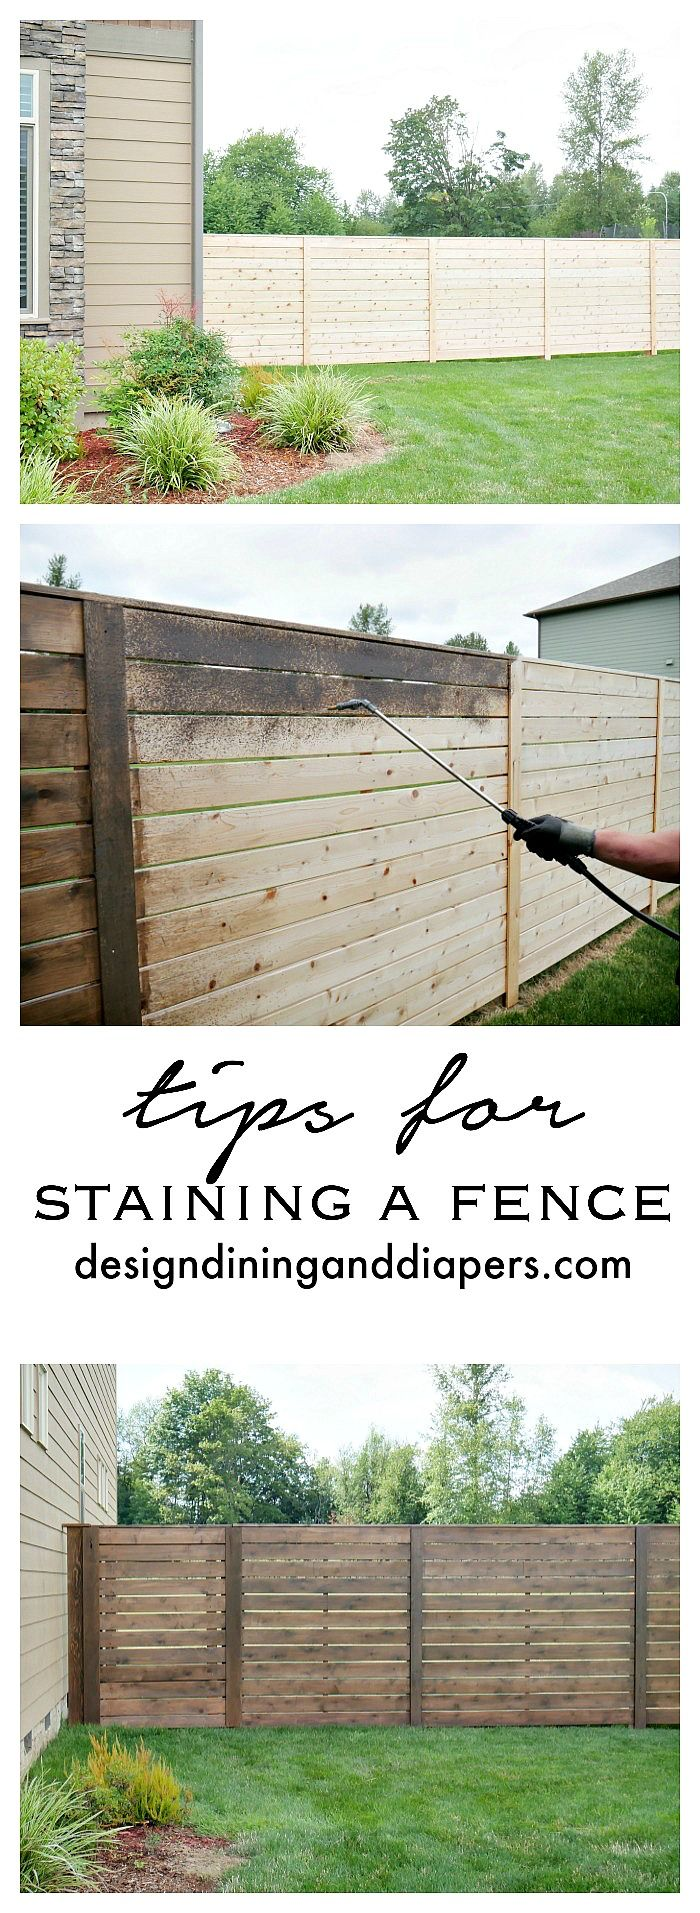 Tips For Staining A Fence | Pinterest | Fences, Backyard and Yards